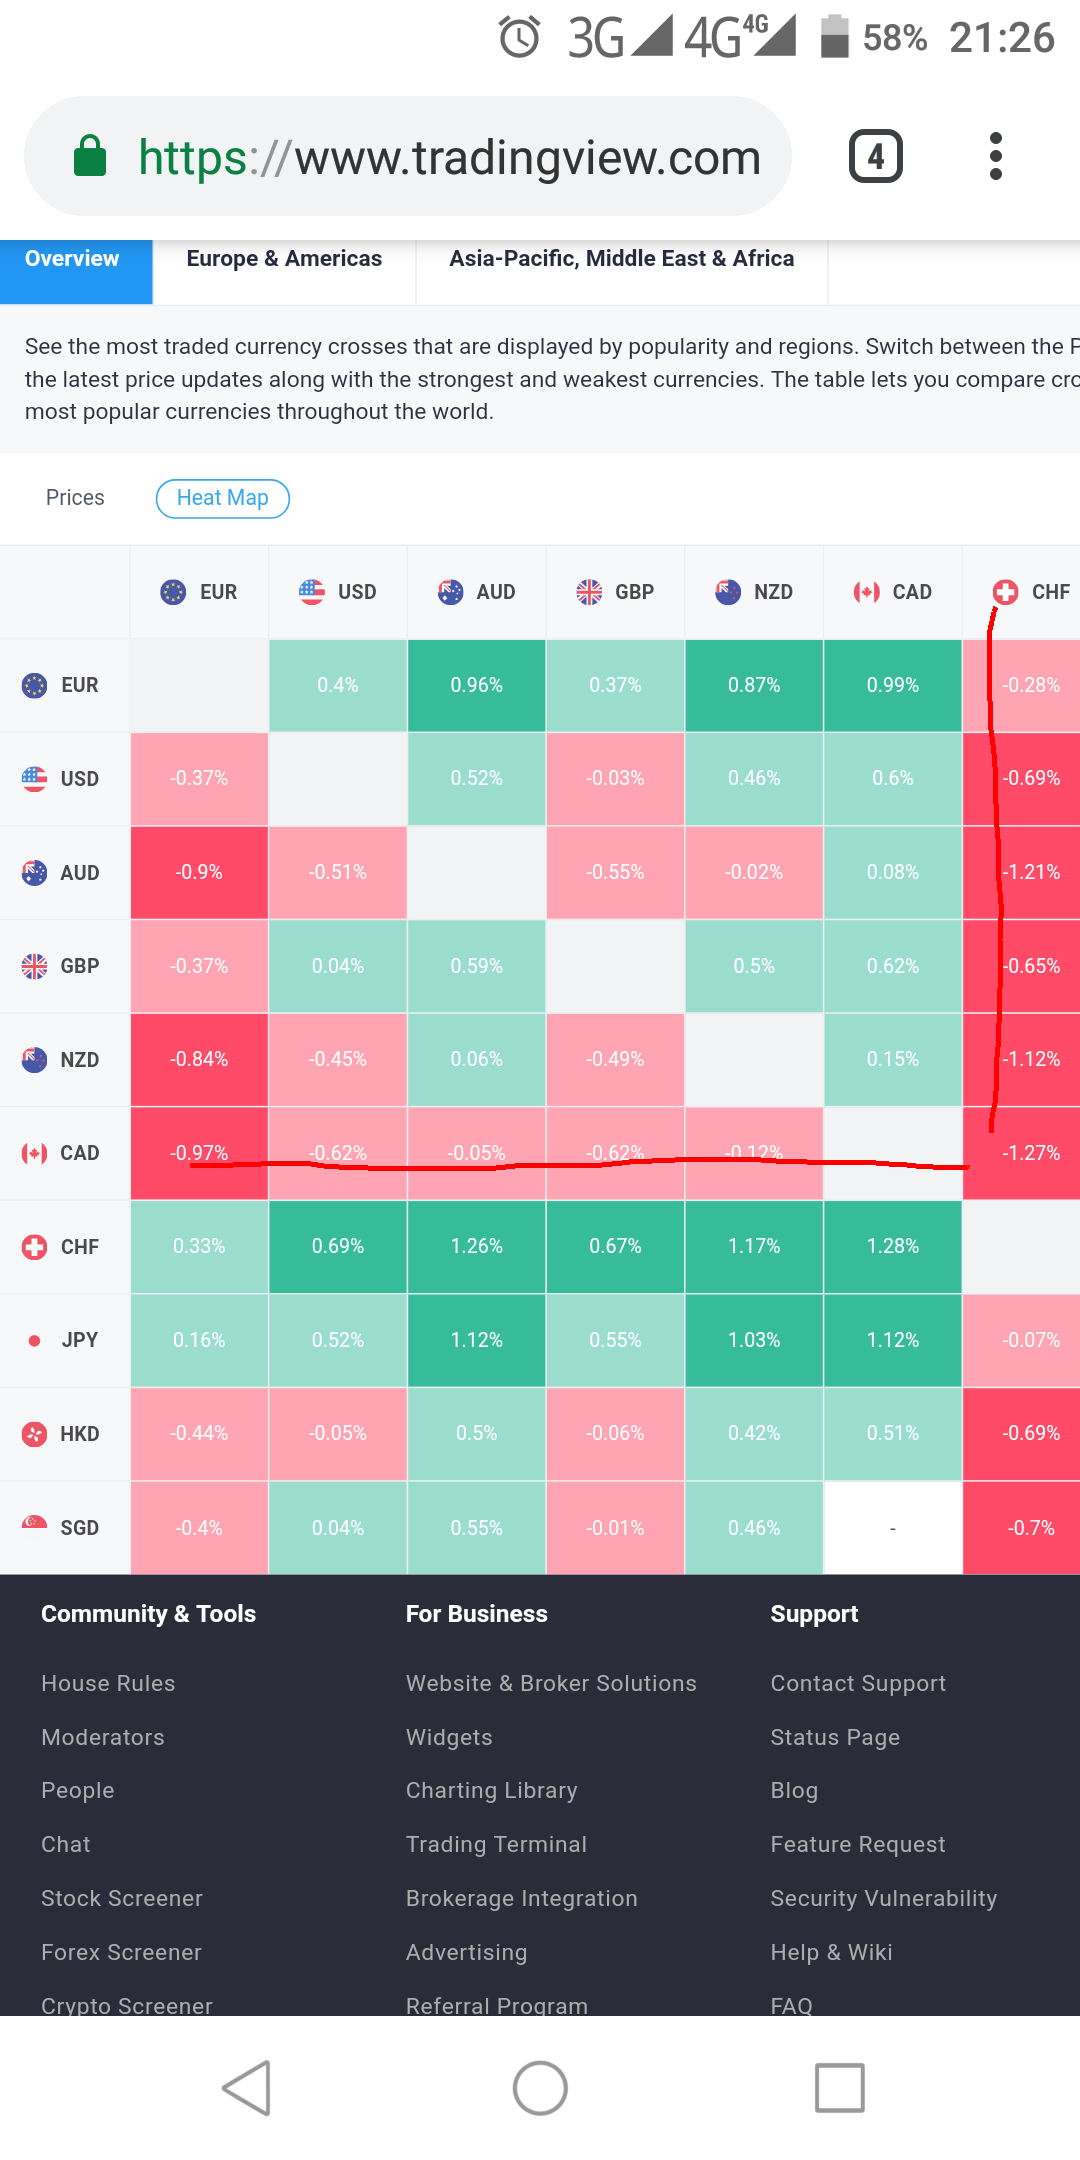 cad/chf heat map